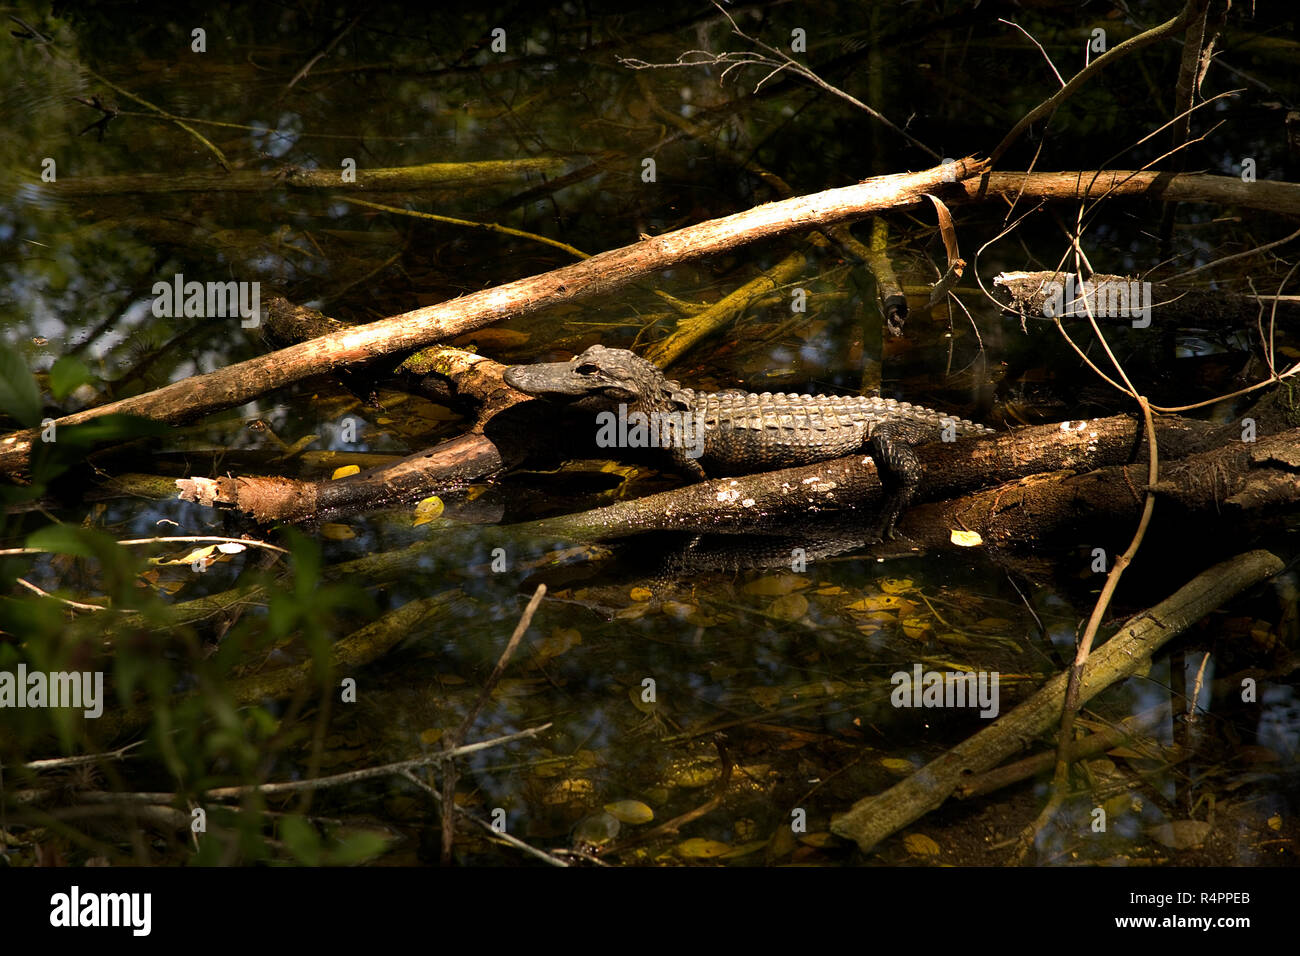 One small baby alligator sitting on a log in a swamp in Big Cypress National Wildlife Reserve, Everglades, Florida. Stock Photo